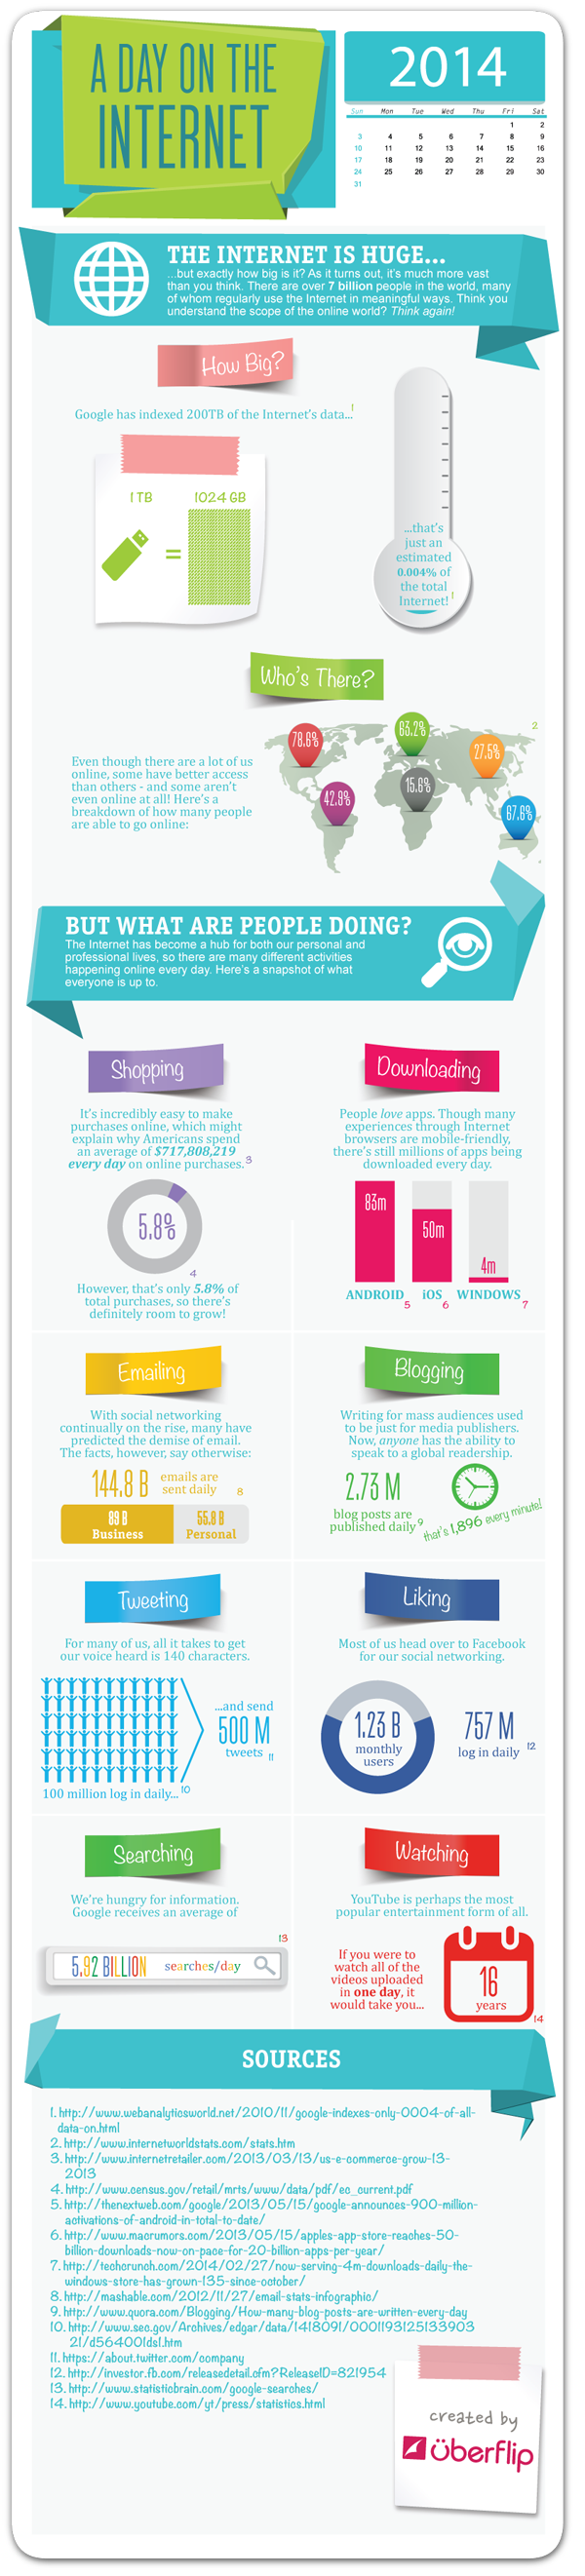 How Big the Internet? http://www.websitemagazine.com/content/blogs/posts/archive/2014/07/22/do-you-know-how-big-the-internet-really-is-infographic.aspx